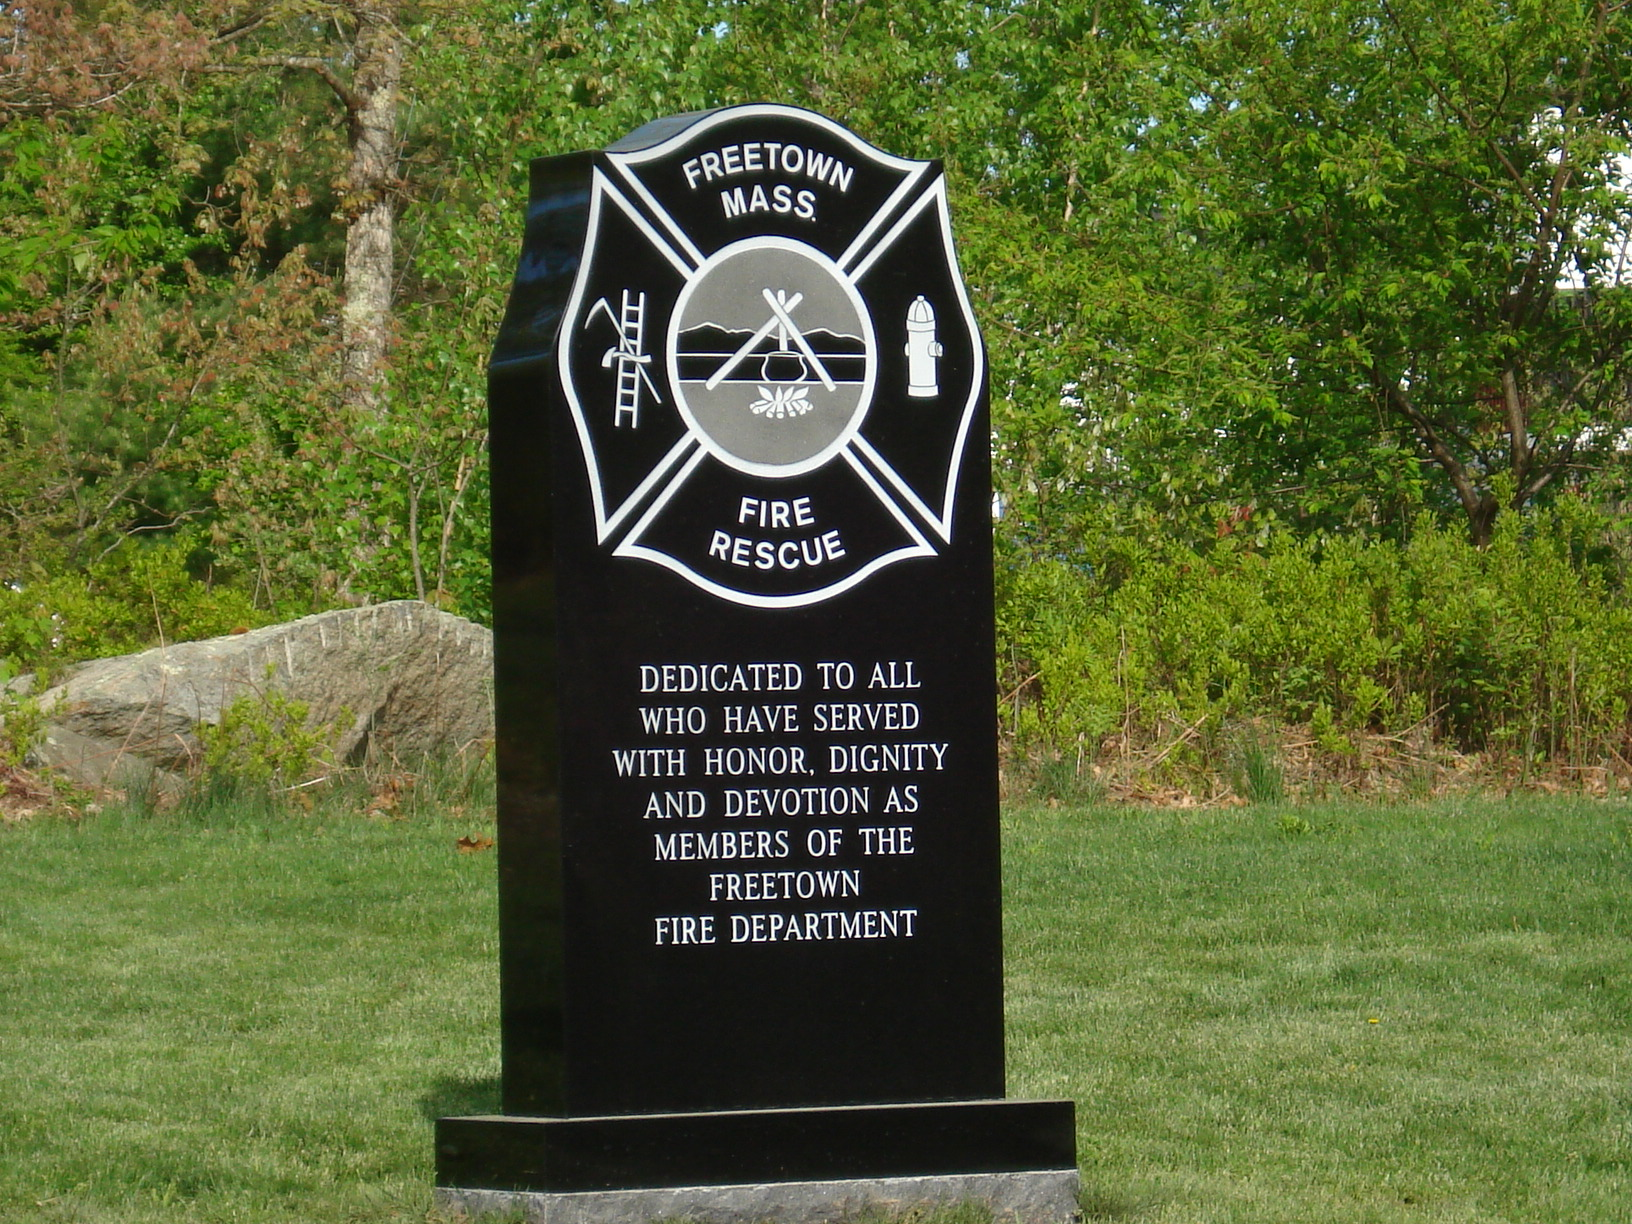 A memorial to those who served as part of the fire dept.